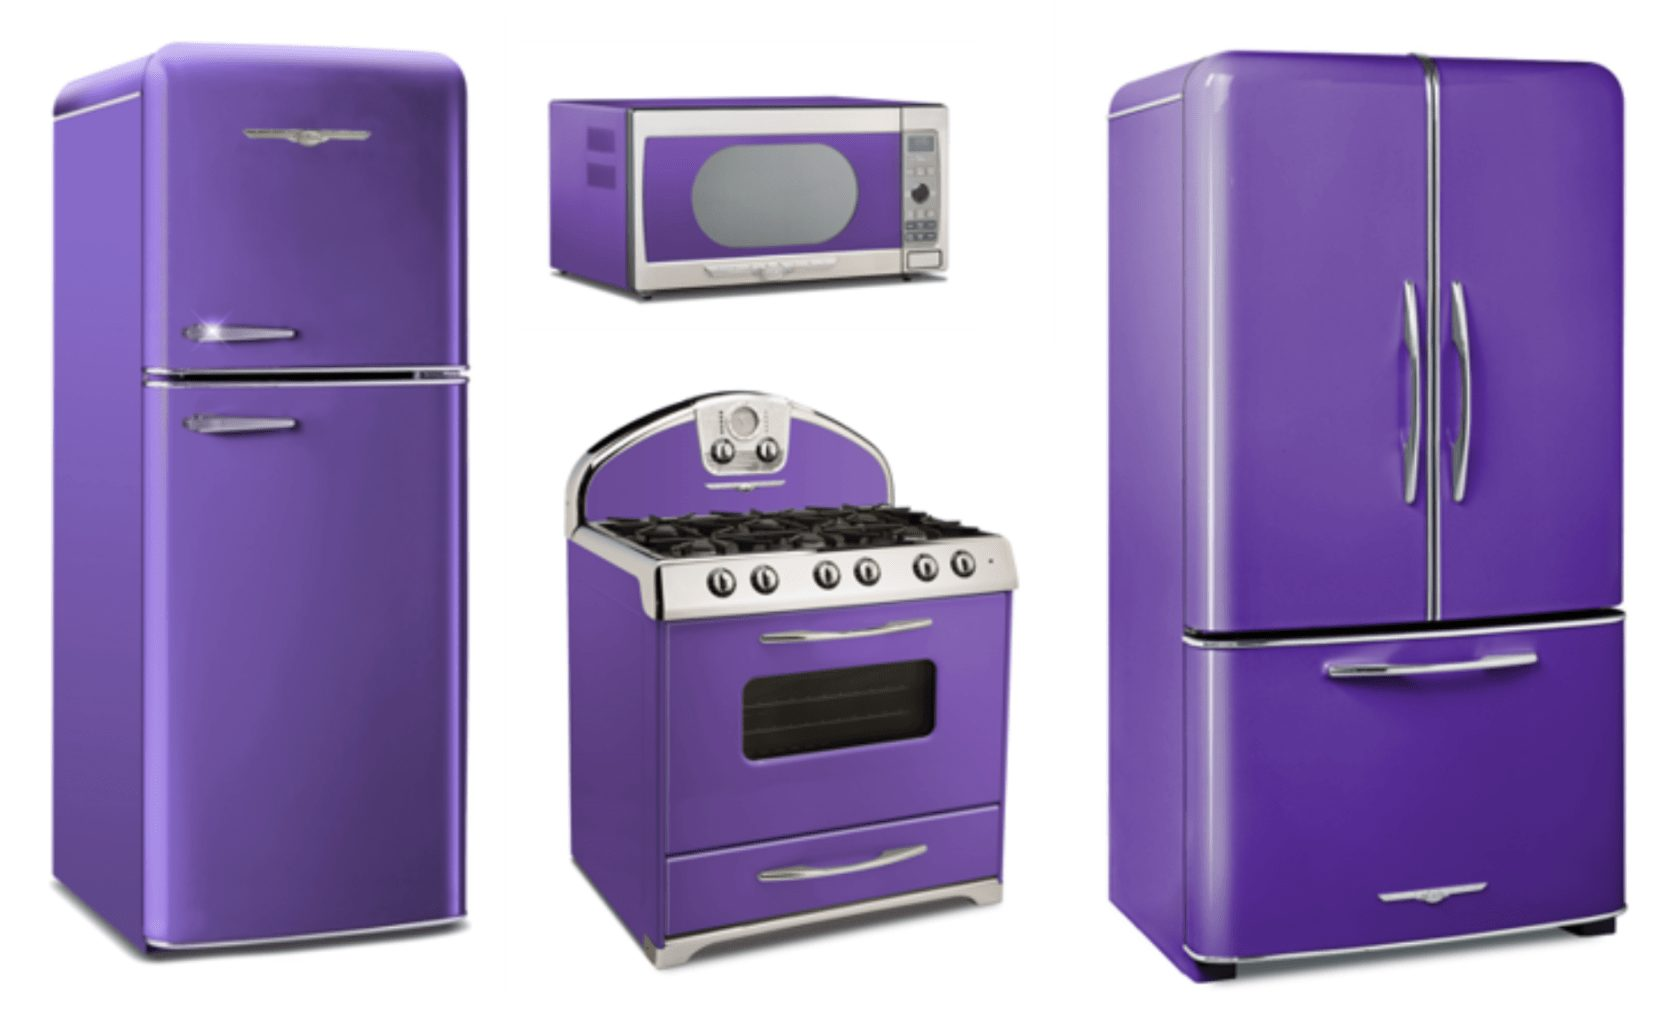 Pantone-color-kitchen-appliances